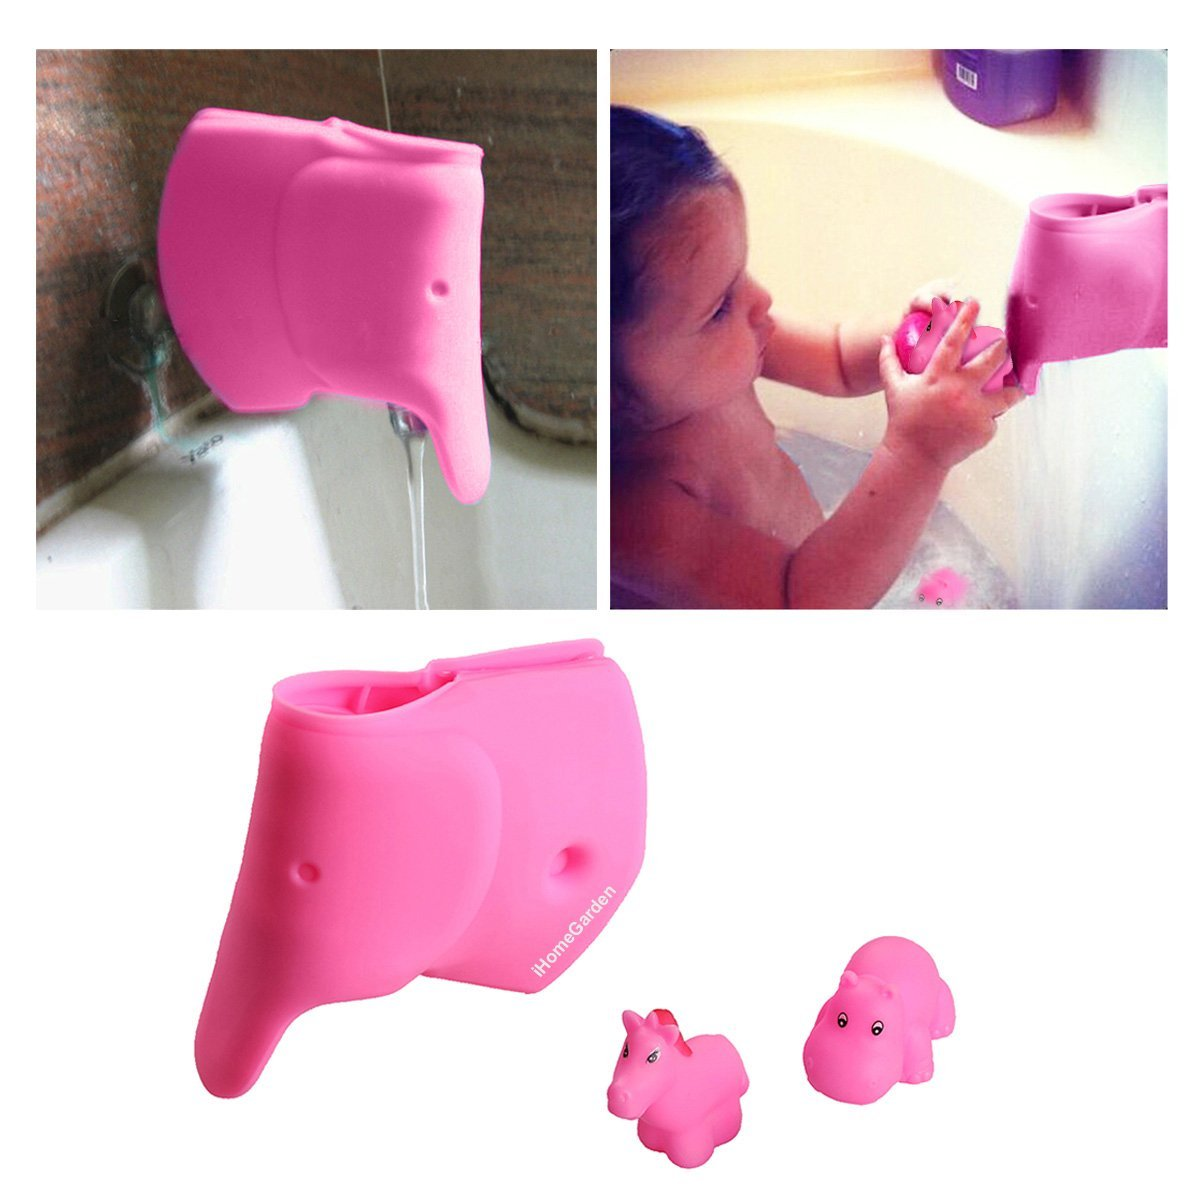 Bath Spout Cover - Bathtub Faucet Cover for Kid - Bath Tub Faucet ...